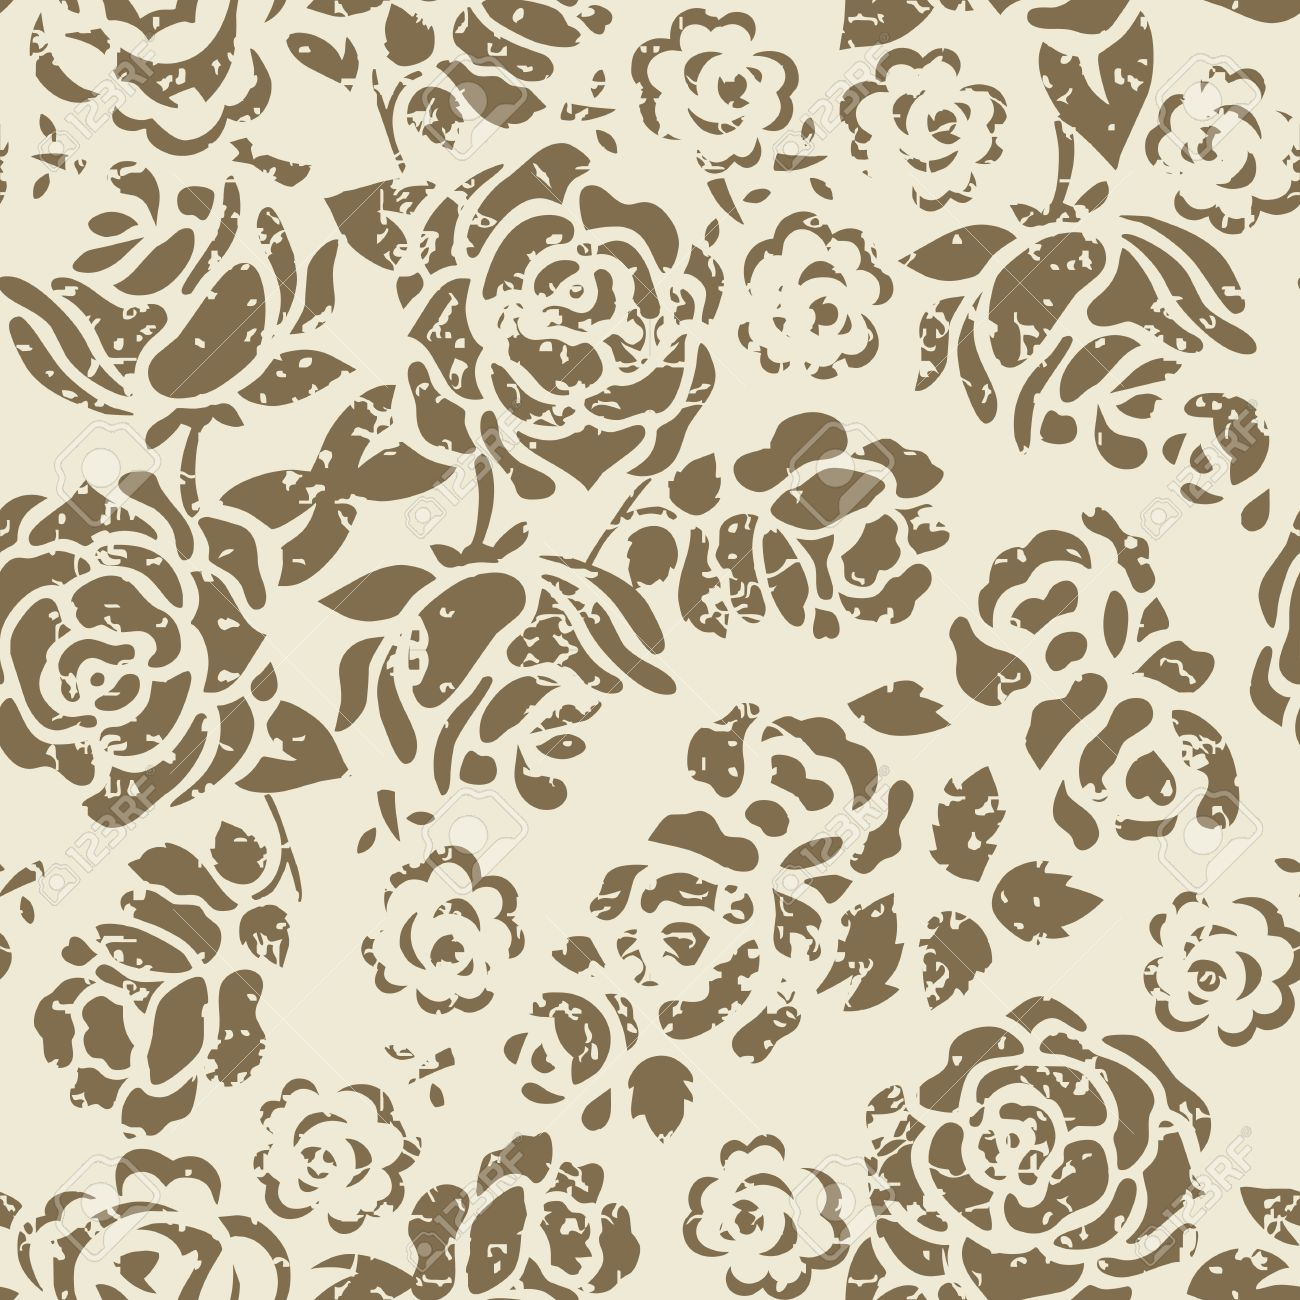 Grunge Seamless Floral Pattern Stock Vector - 10260123